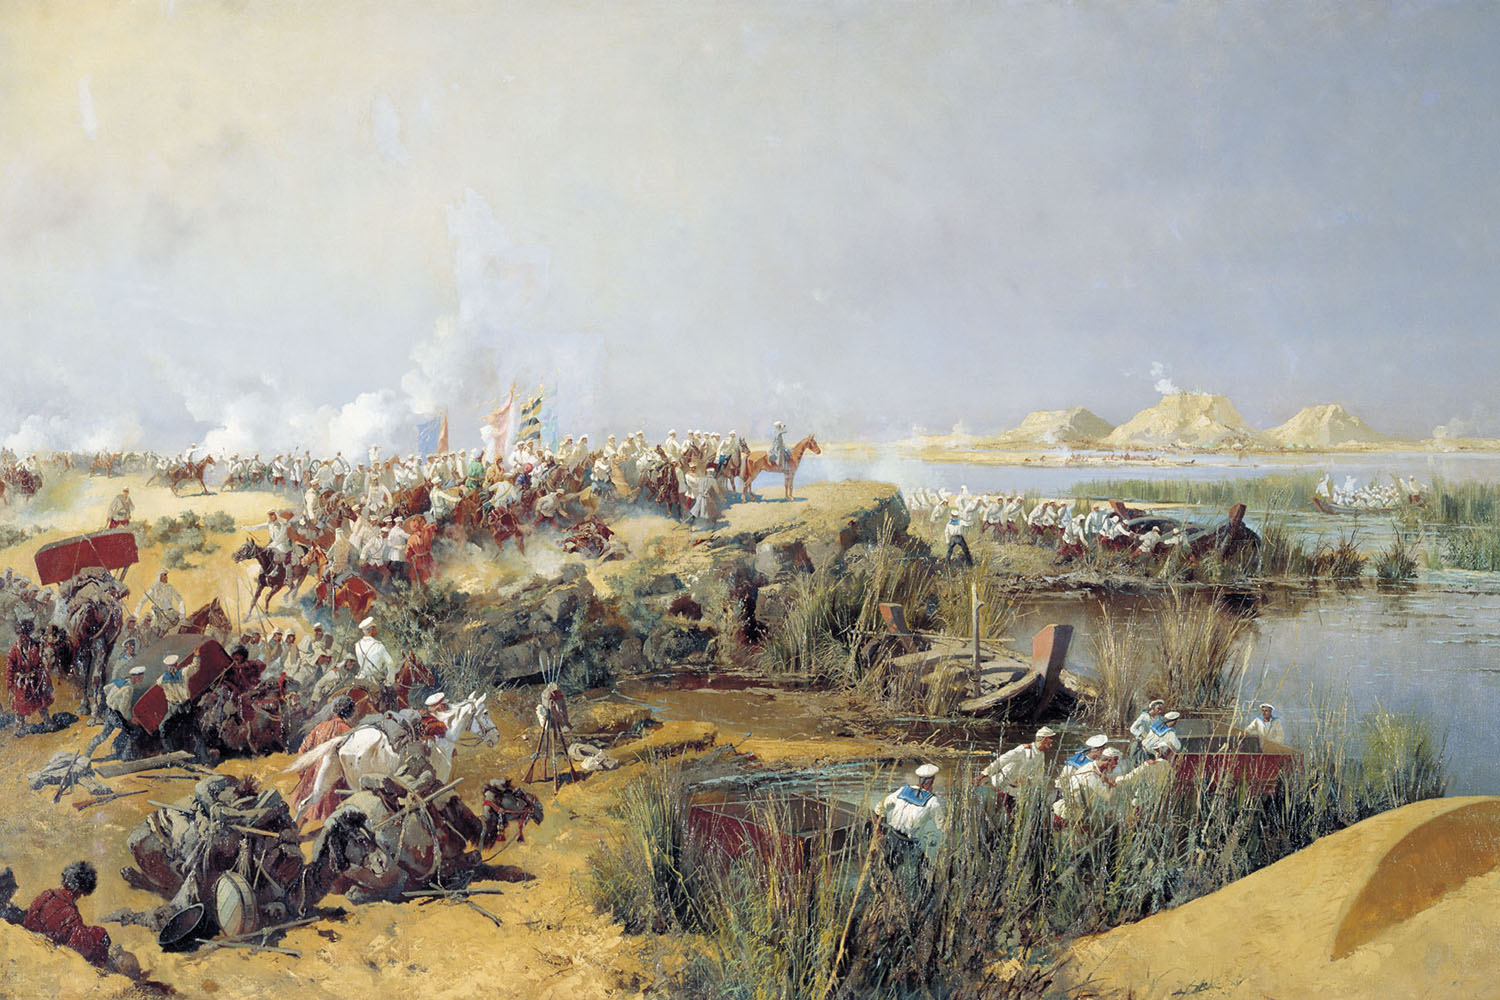 Russian Forces Crossing the Amu Darya River, Khiva Campaign, 1873, by Nikolay Karazin, 1889.